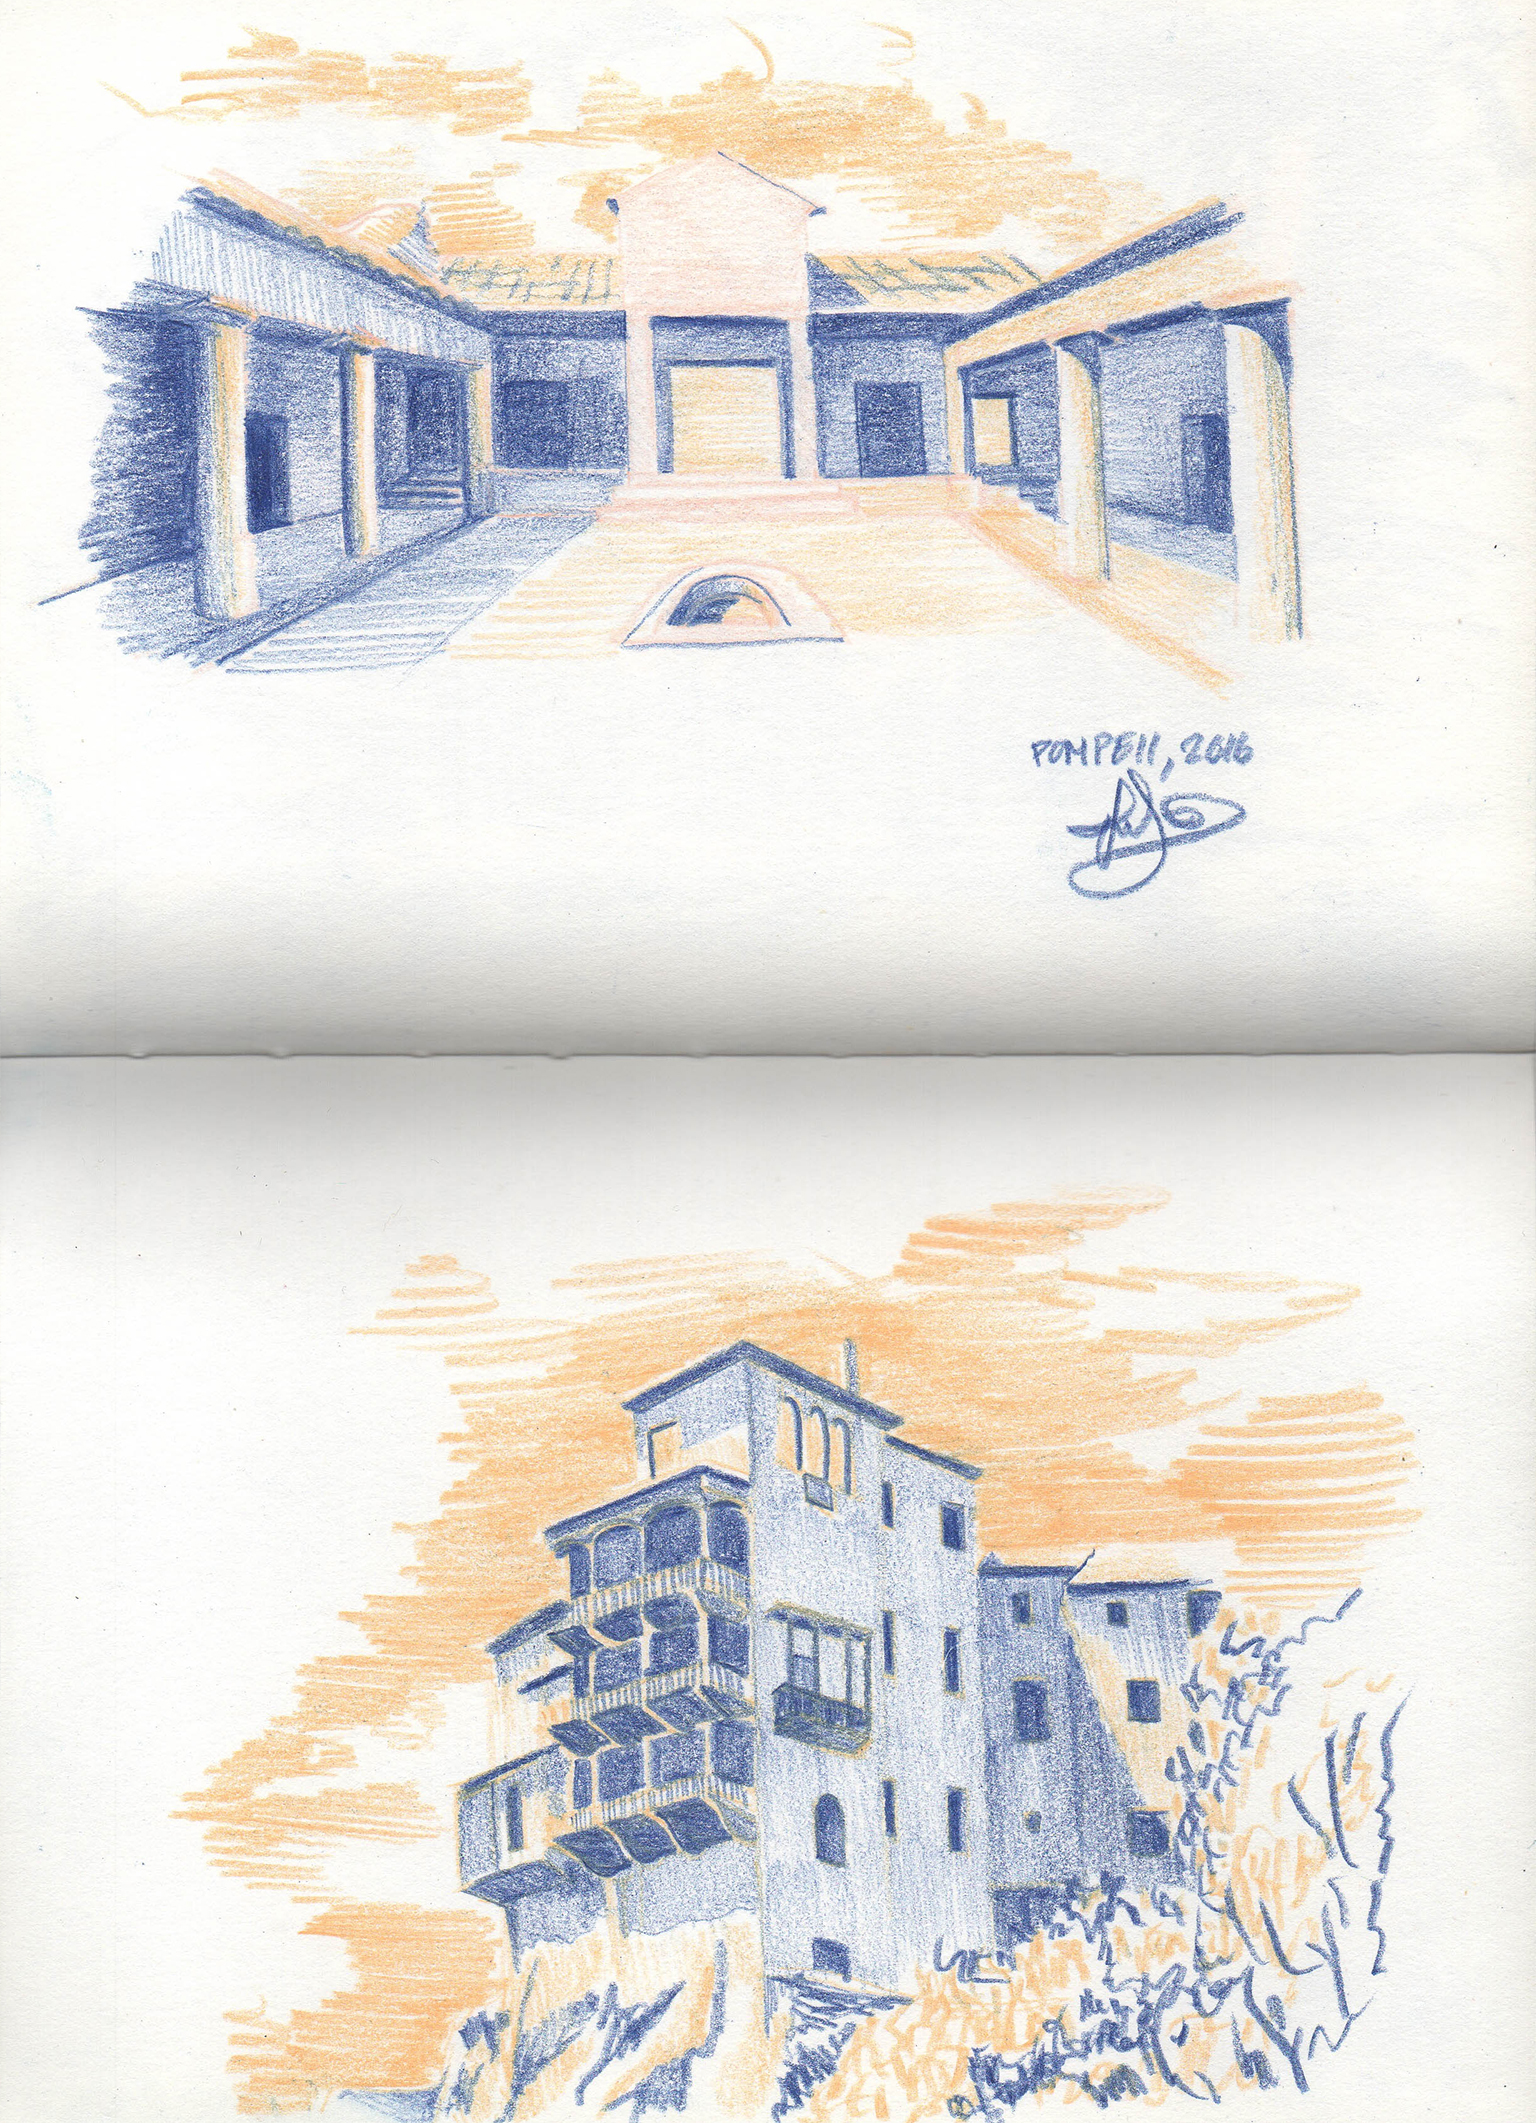 Rome-Sketchbook-Edited-Scans-63-forweb.jpg